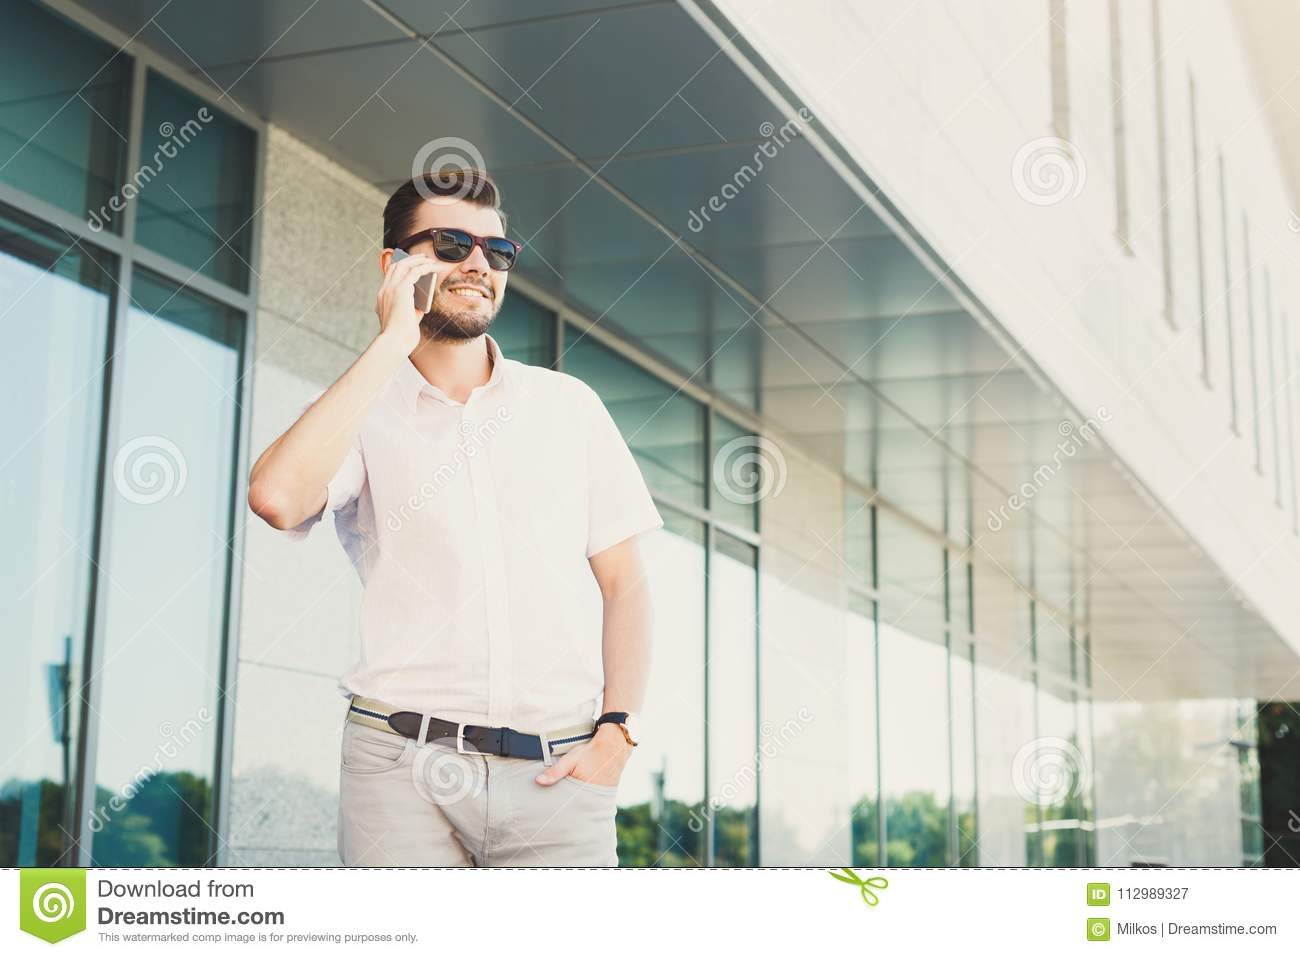 Smiling businessman making a phone call outdoors